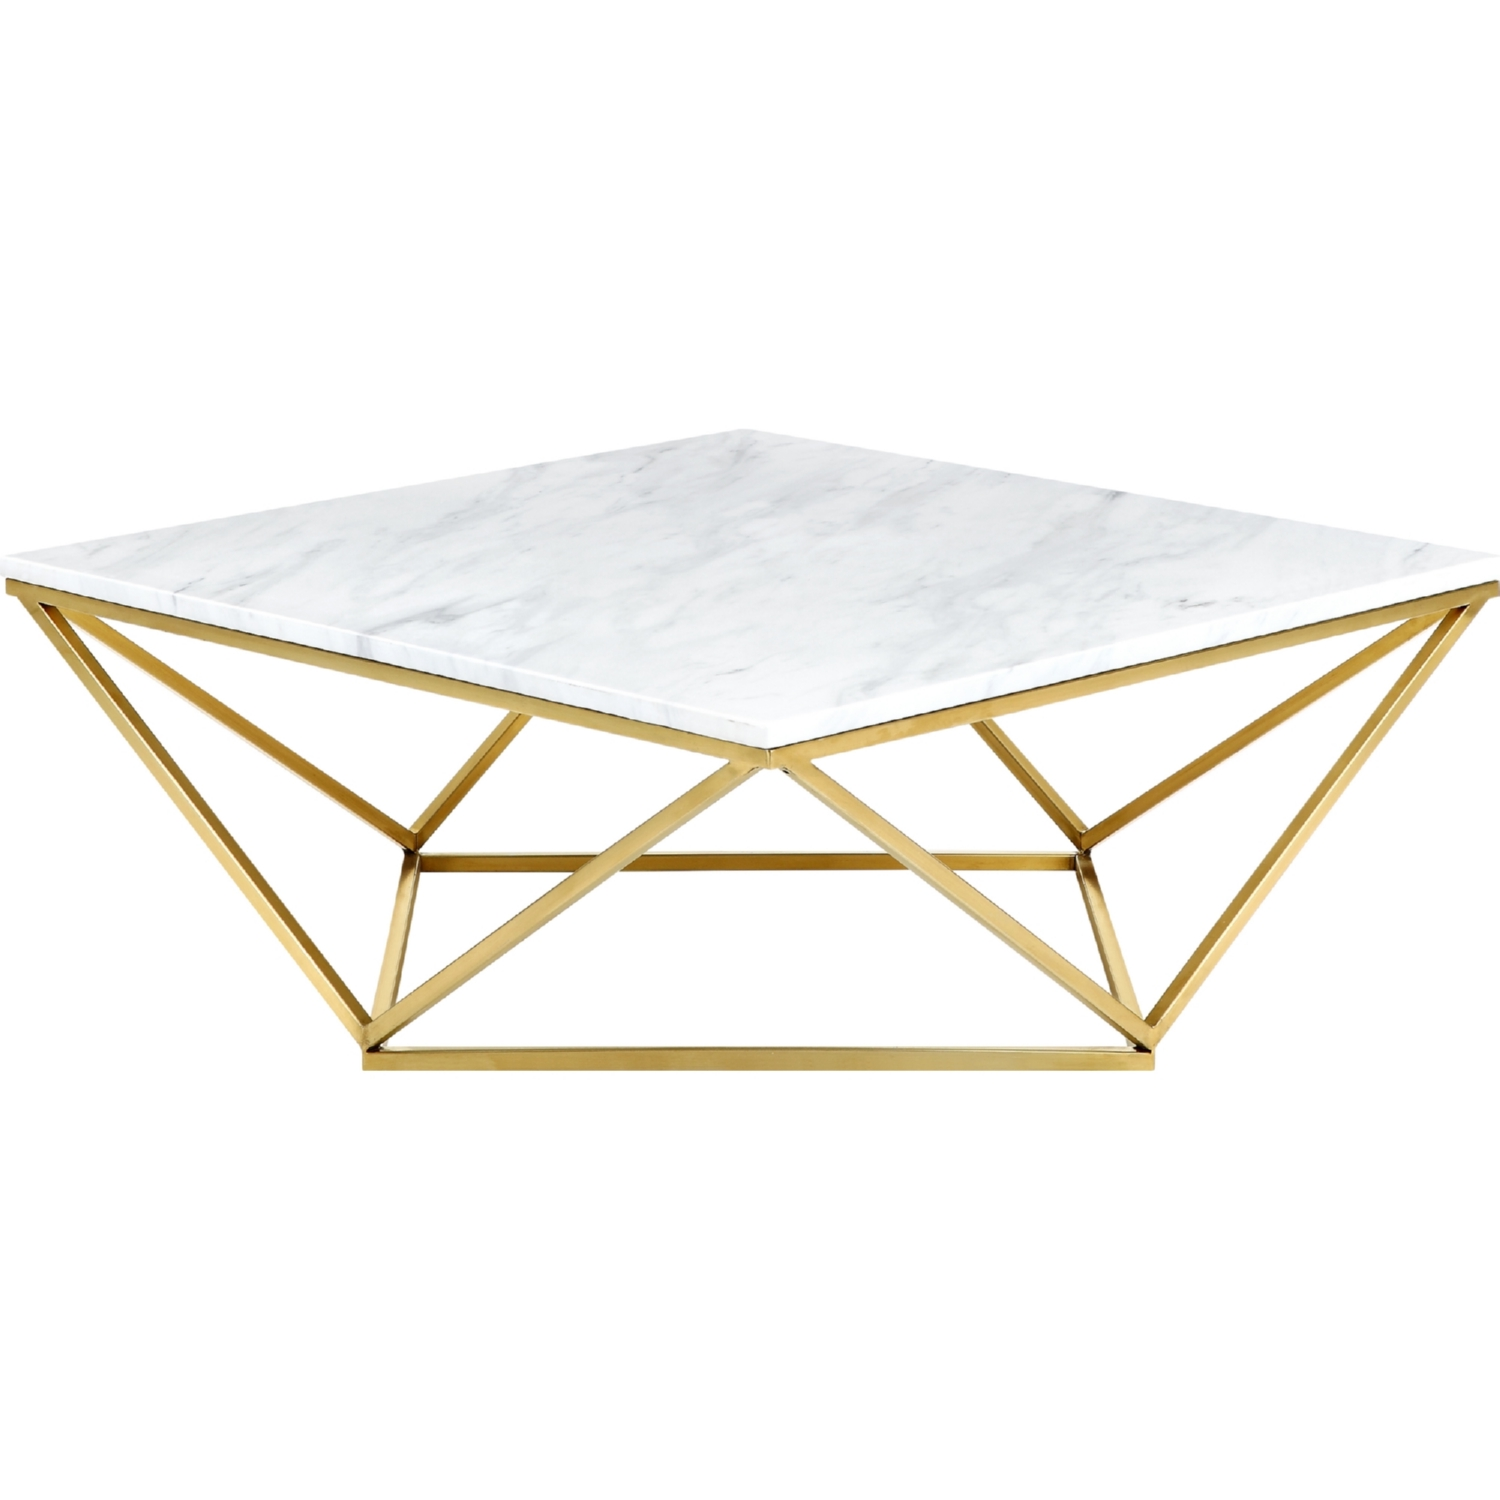 Meridian Furniture 216 C Mason Gold Geometric Coffee Table w